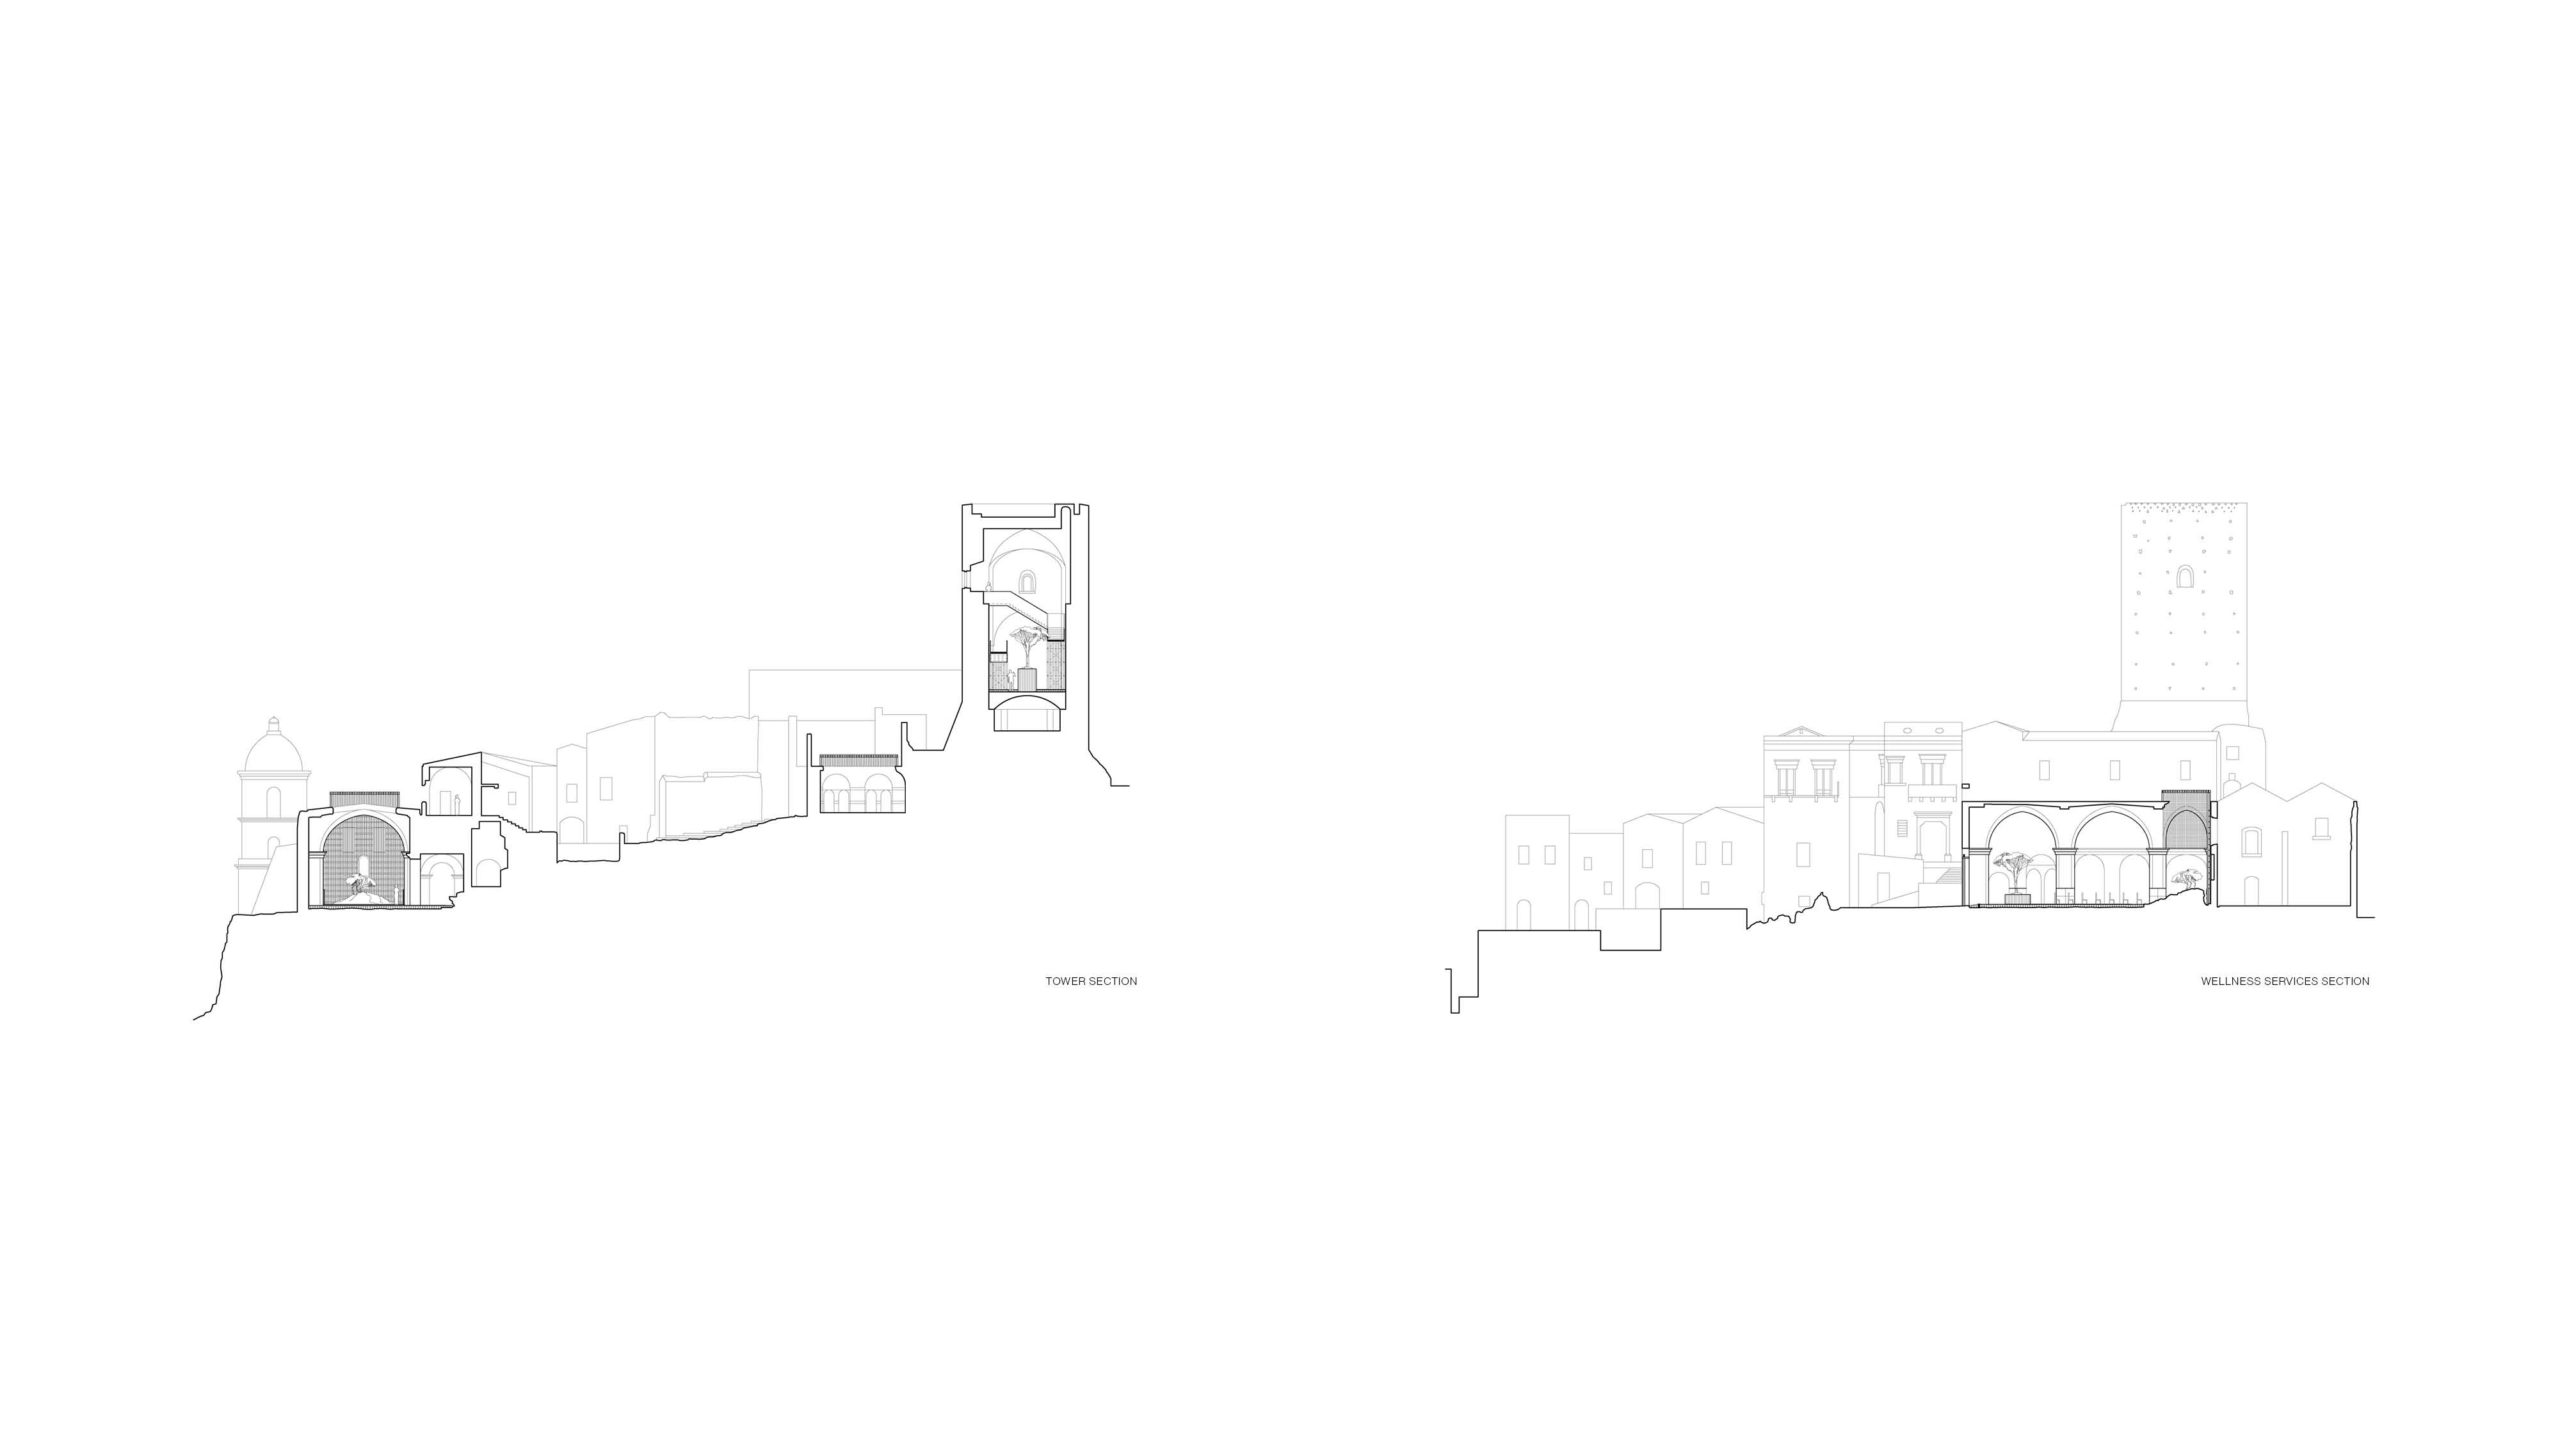 Unbuilt : TRACES - GHOST TOWN REFUGE, at Craco, Italy, by Claudio C. Araya, Yahya Abdullah 11